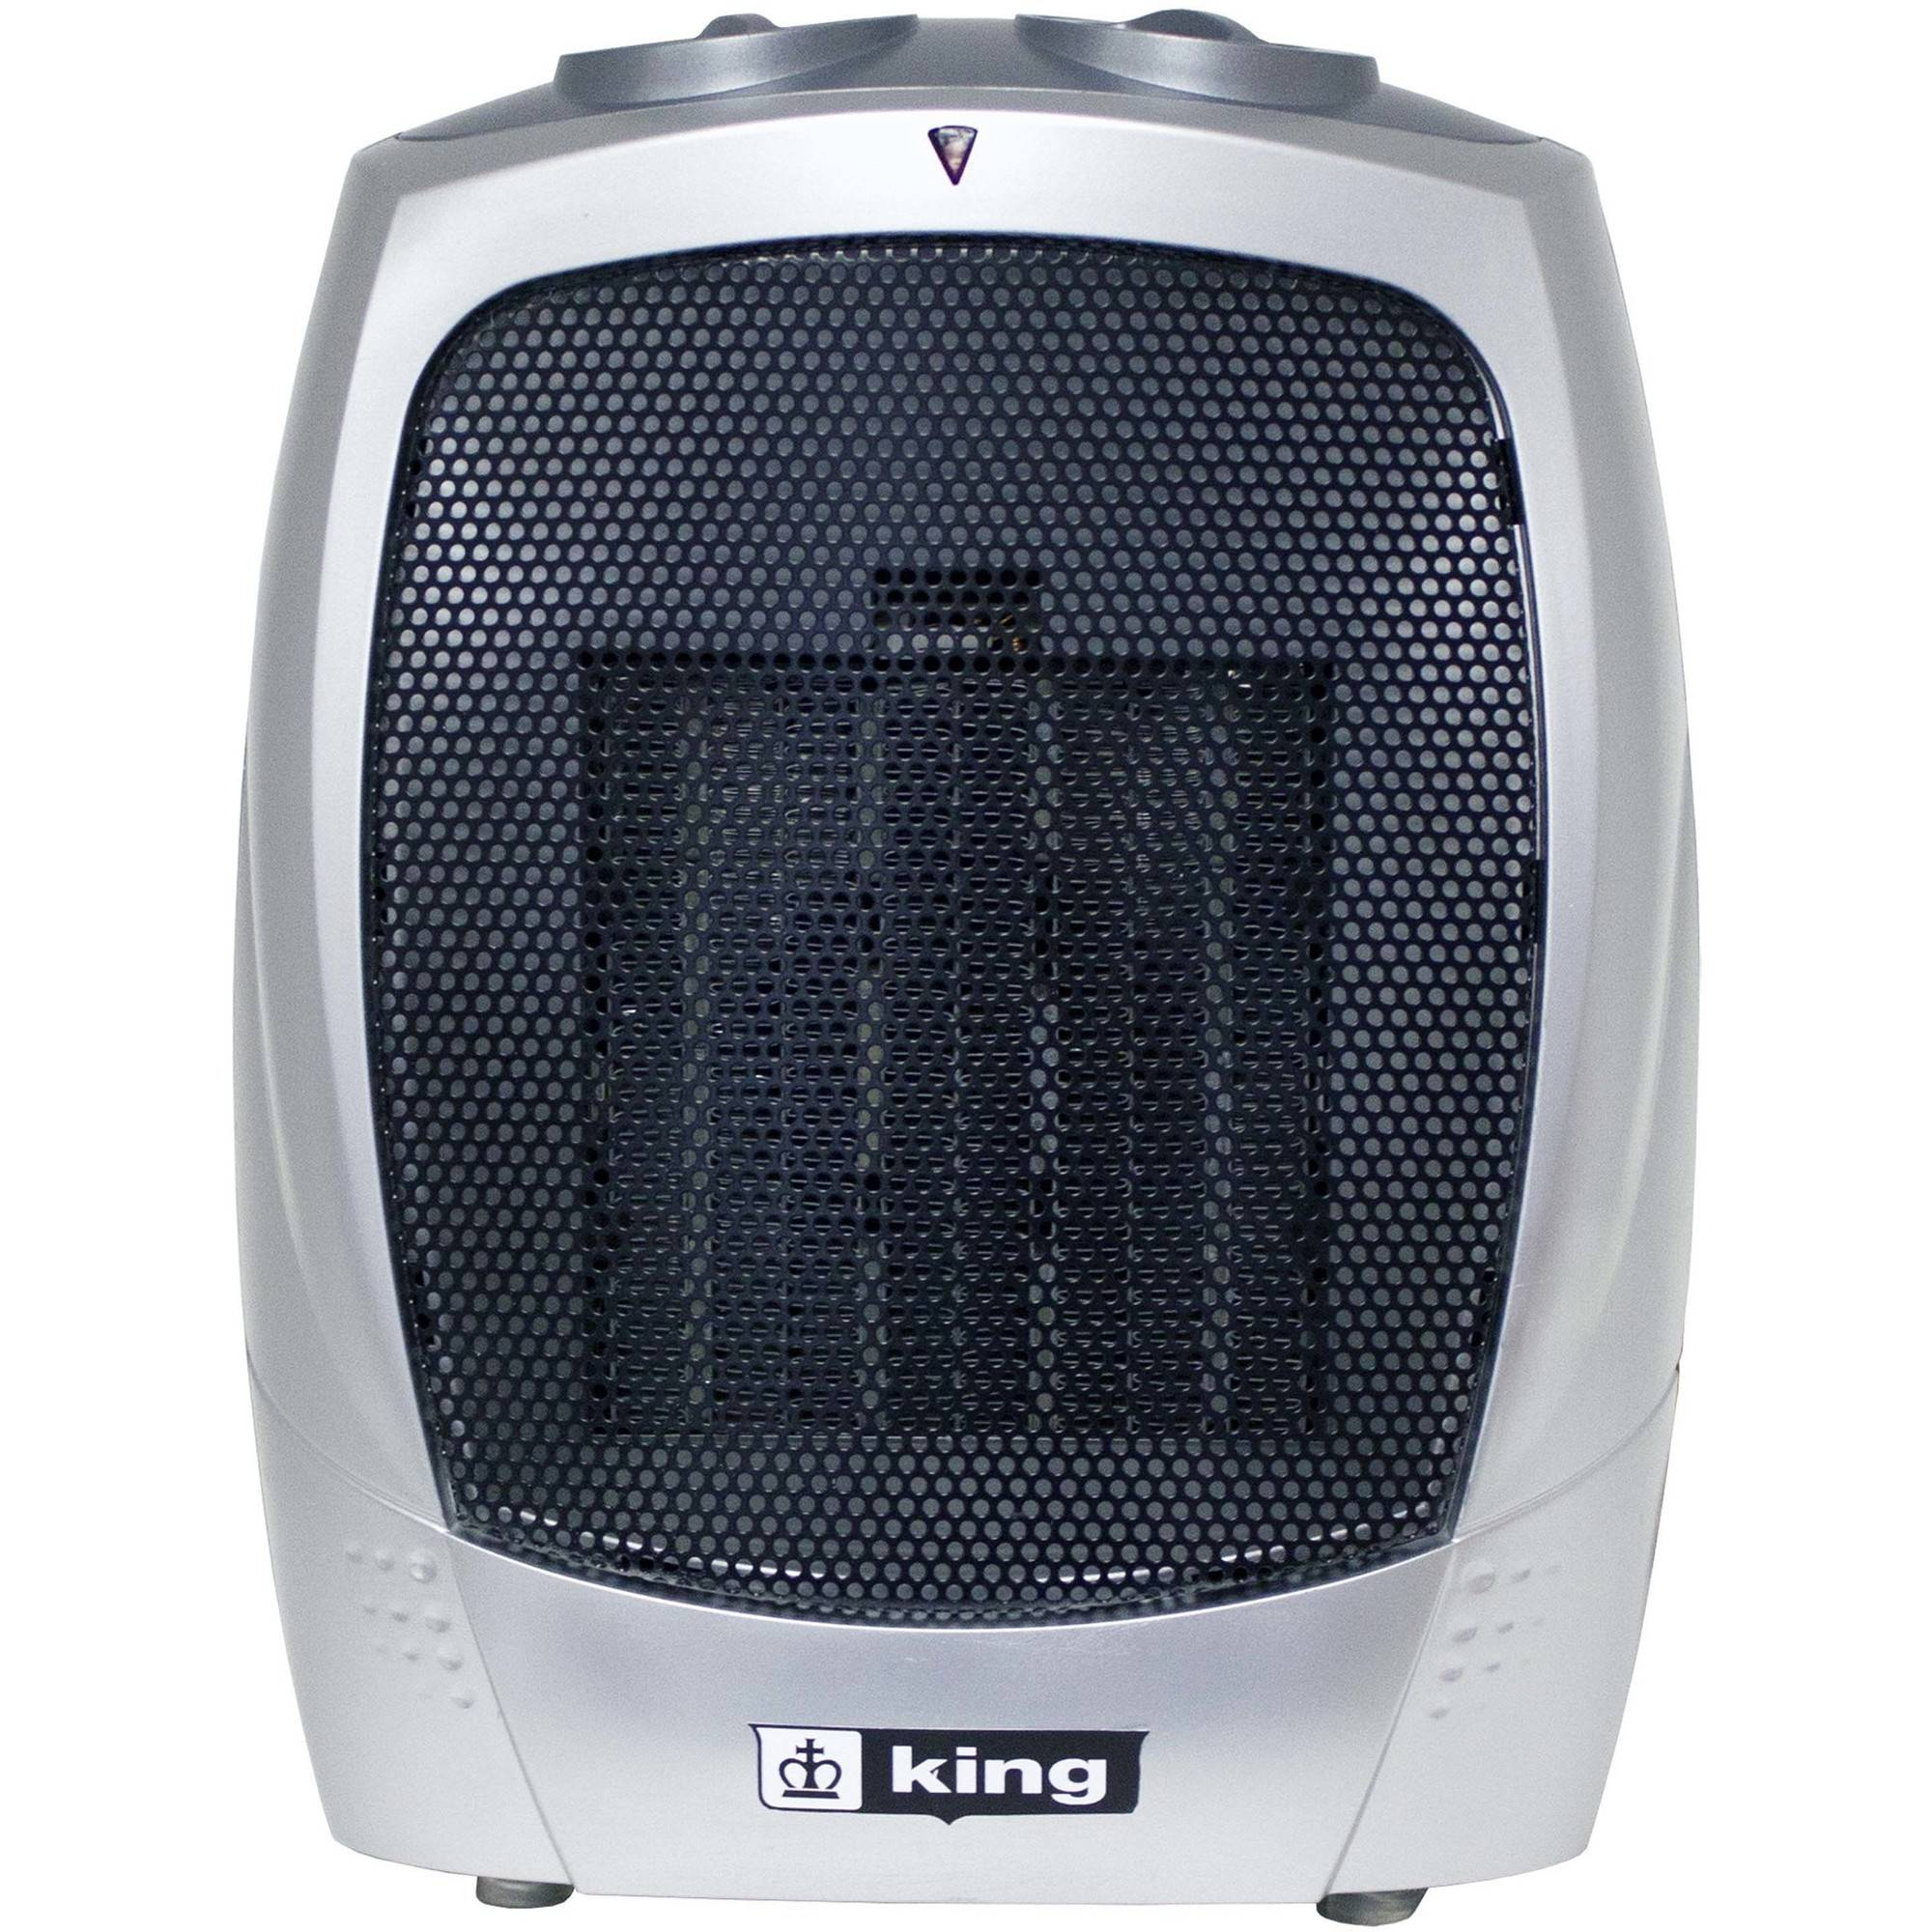 King PH-2 120V Portable Electric Heater, Grey